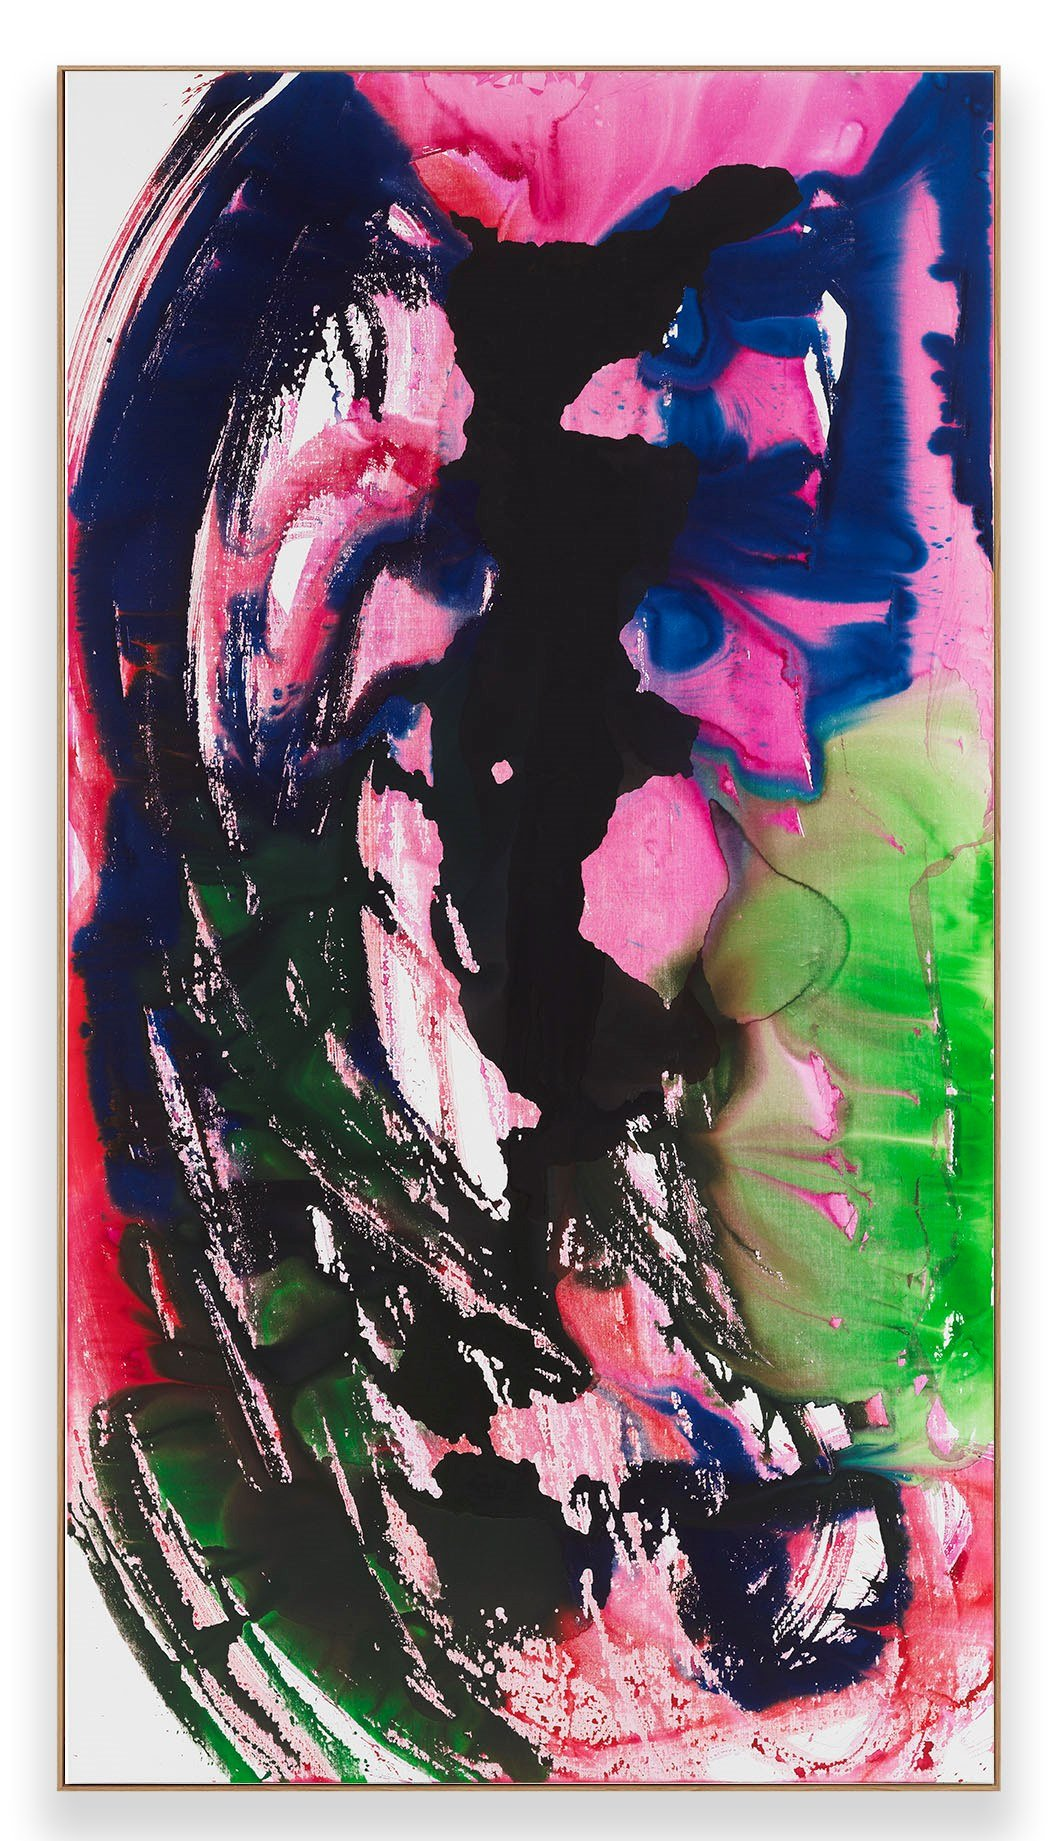 Katharina Grosse, Untitled, 2019, acrylic on canvas, 149 5/8 x 78 3/4 inches © Katharina Grosse und VG Bild-Kunst, Bonn 2020 Photo: Jens Ziehe Courtesy the artist and Gagosian